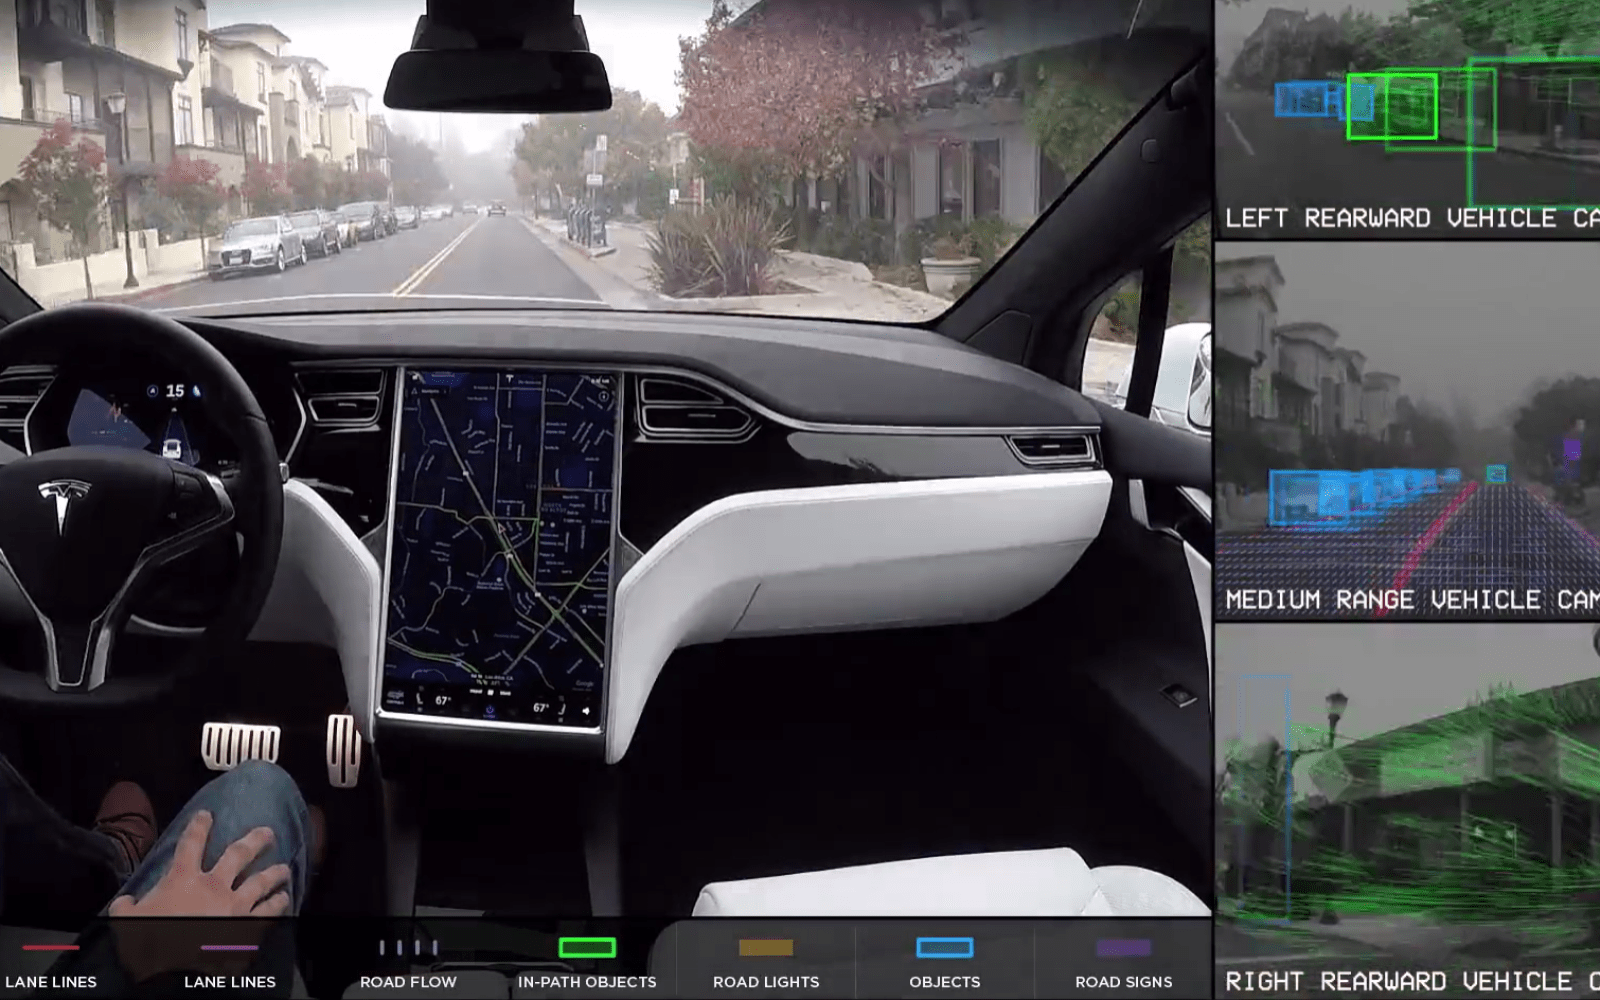 Watch Tesla's latest self-driving demo in real-time instead of sped up for better look at the system